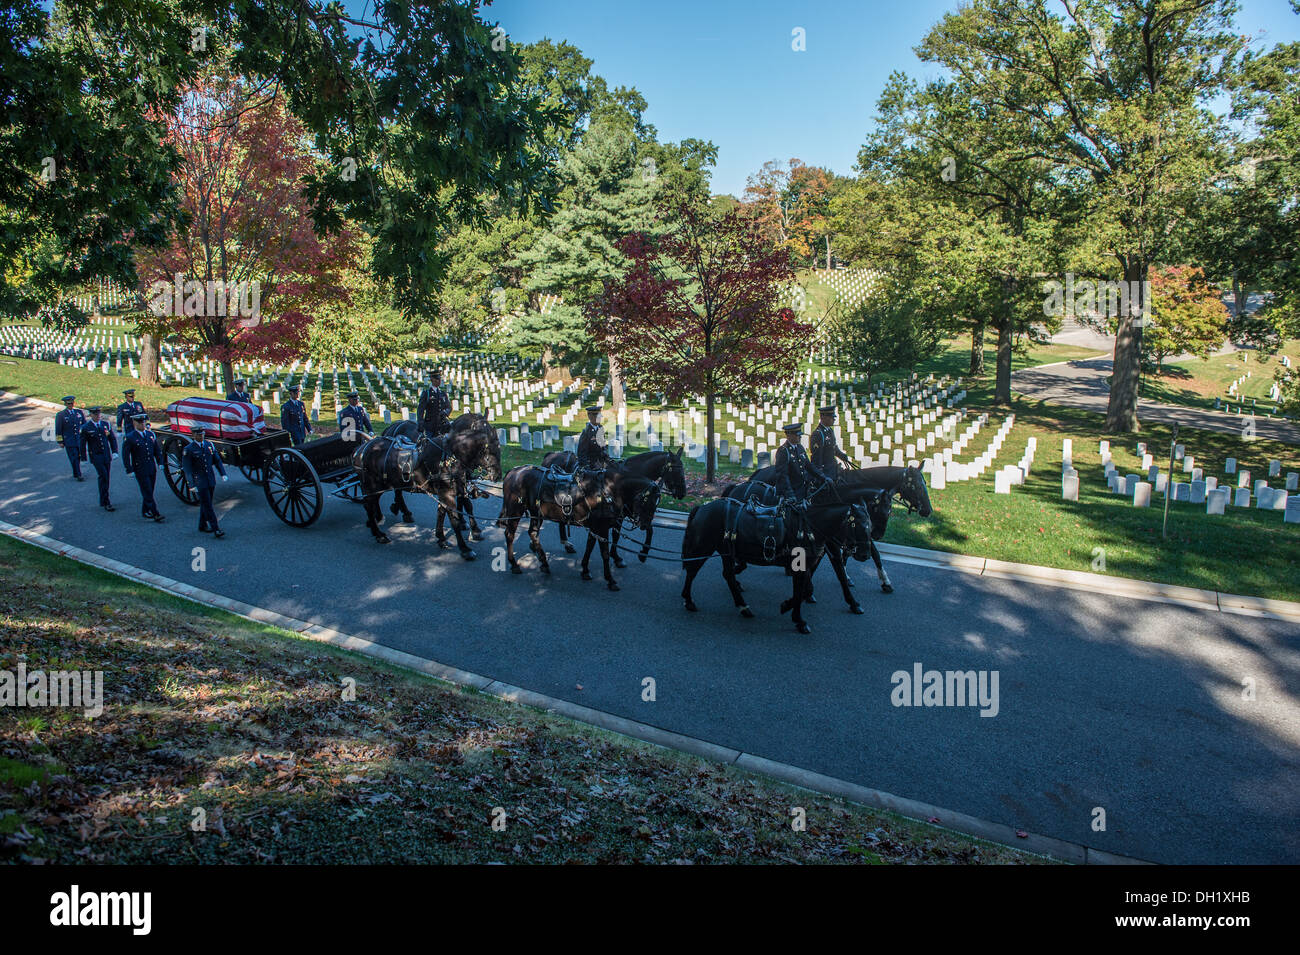 Service members from the United States Army's Old Guard and the Coast Guard Ceremonial Honor Guard participate in an Inurnmet service in the Arlington National Cemetary, Tuesday, Oct. 15, 2013. Servicemembers at the Arlington National Cemetary perform gra - Stock Image